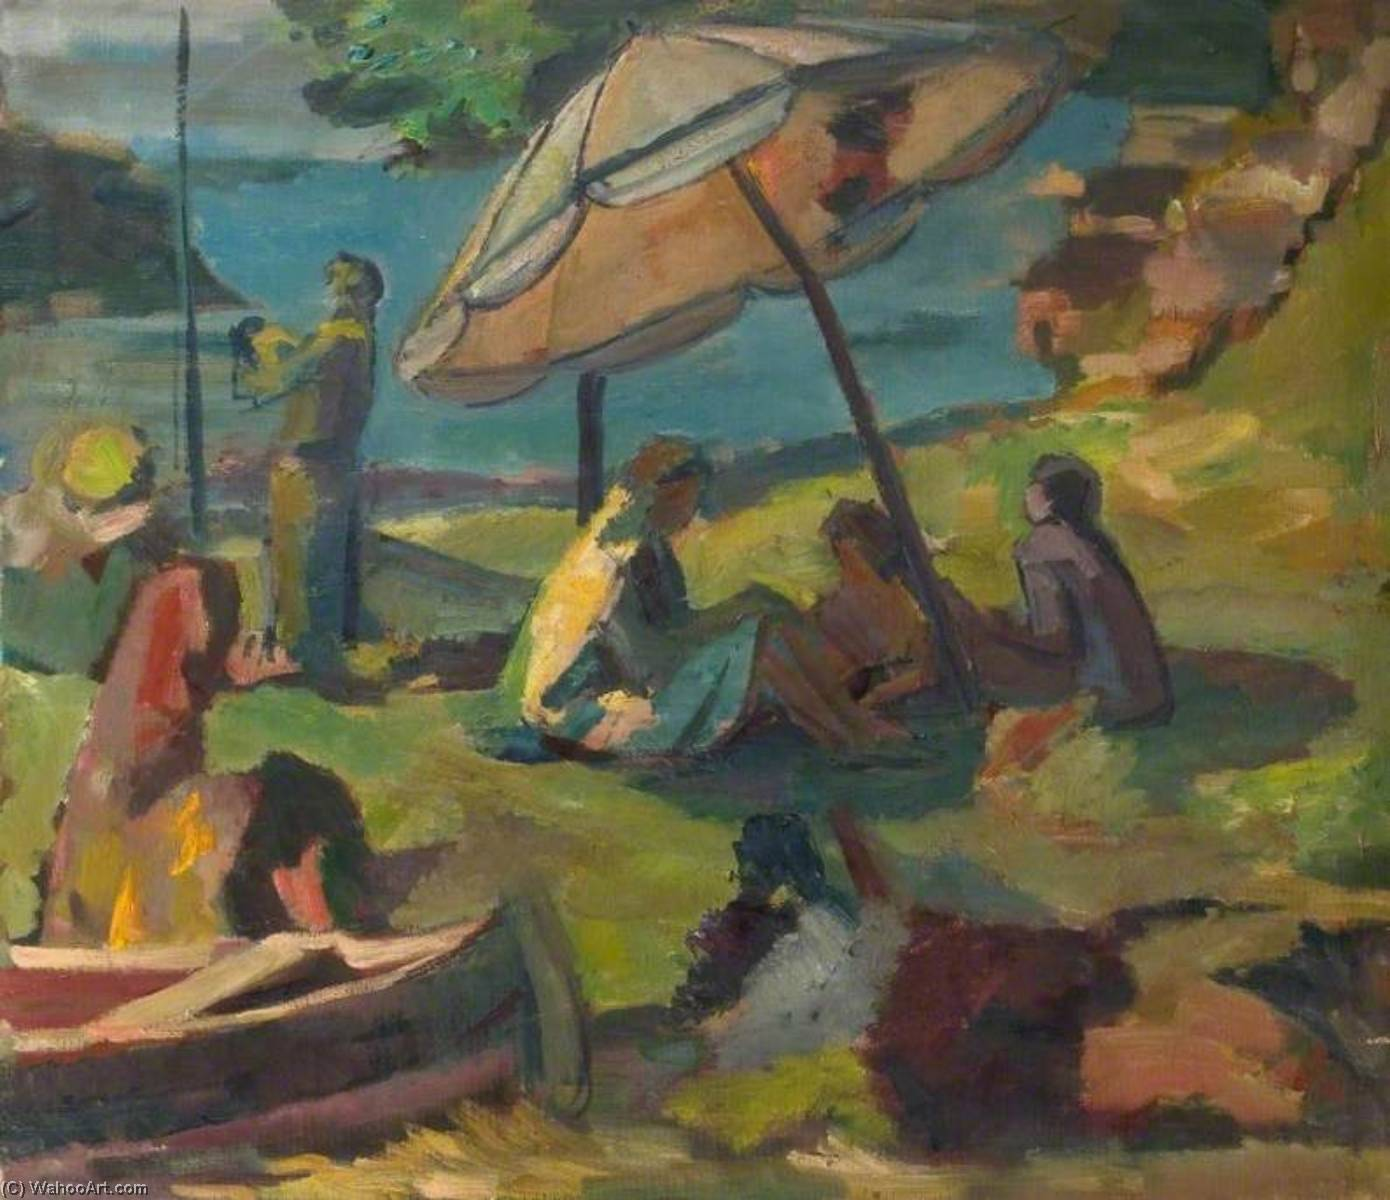 Beach Scene with a Sunshade, Oil On Canvas by Theodor Kern